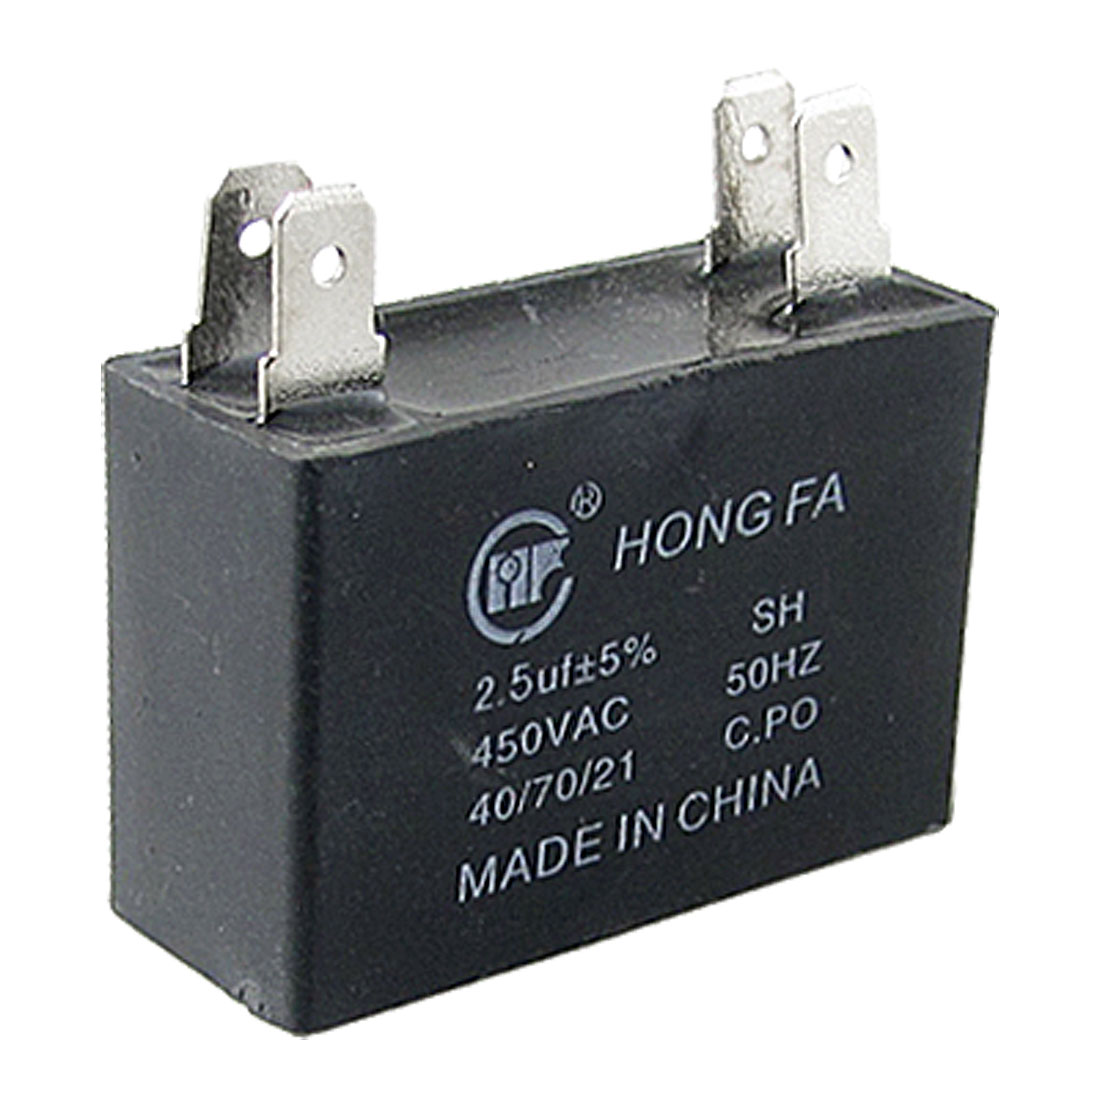 Air Conditioner Running 2.5uF 450V AC Polypropylene Capacitor